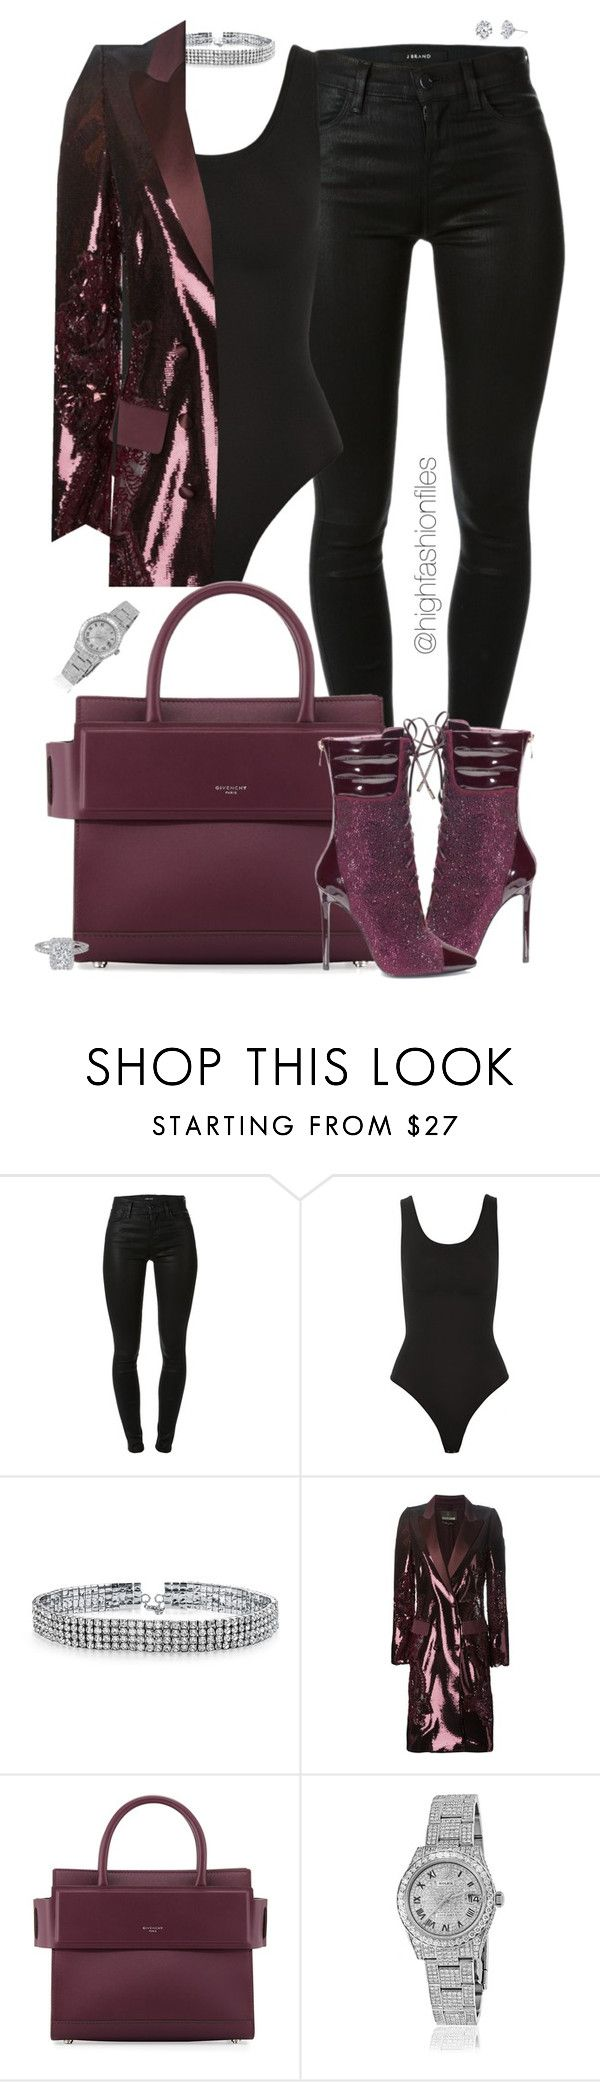 """""""Untitled #2647"""" by highfashionfiles ❤ liked on Polyvore featuring J Brand, Yummie by Heather Thomson, Bling Jewelry, Roberto Cavalli, Givenchy, Rolex and Harry Kotlar"""